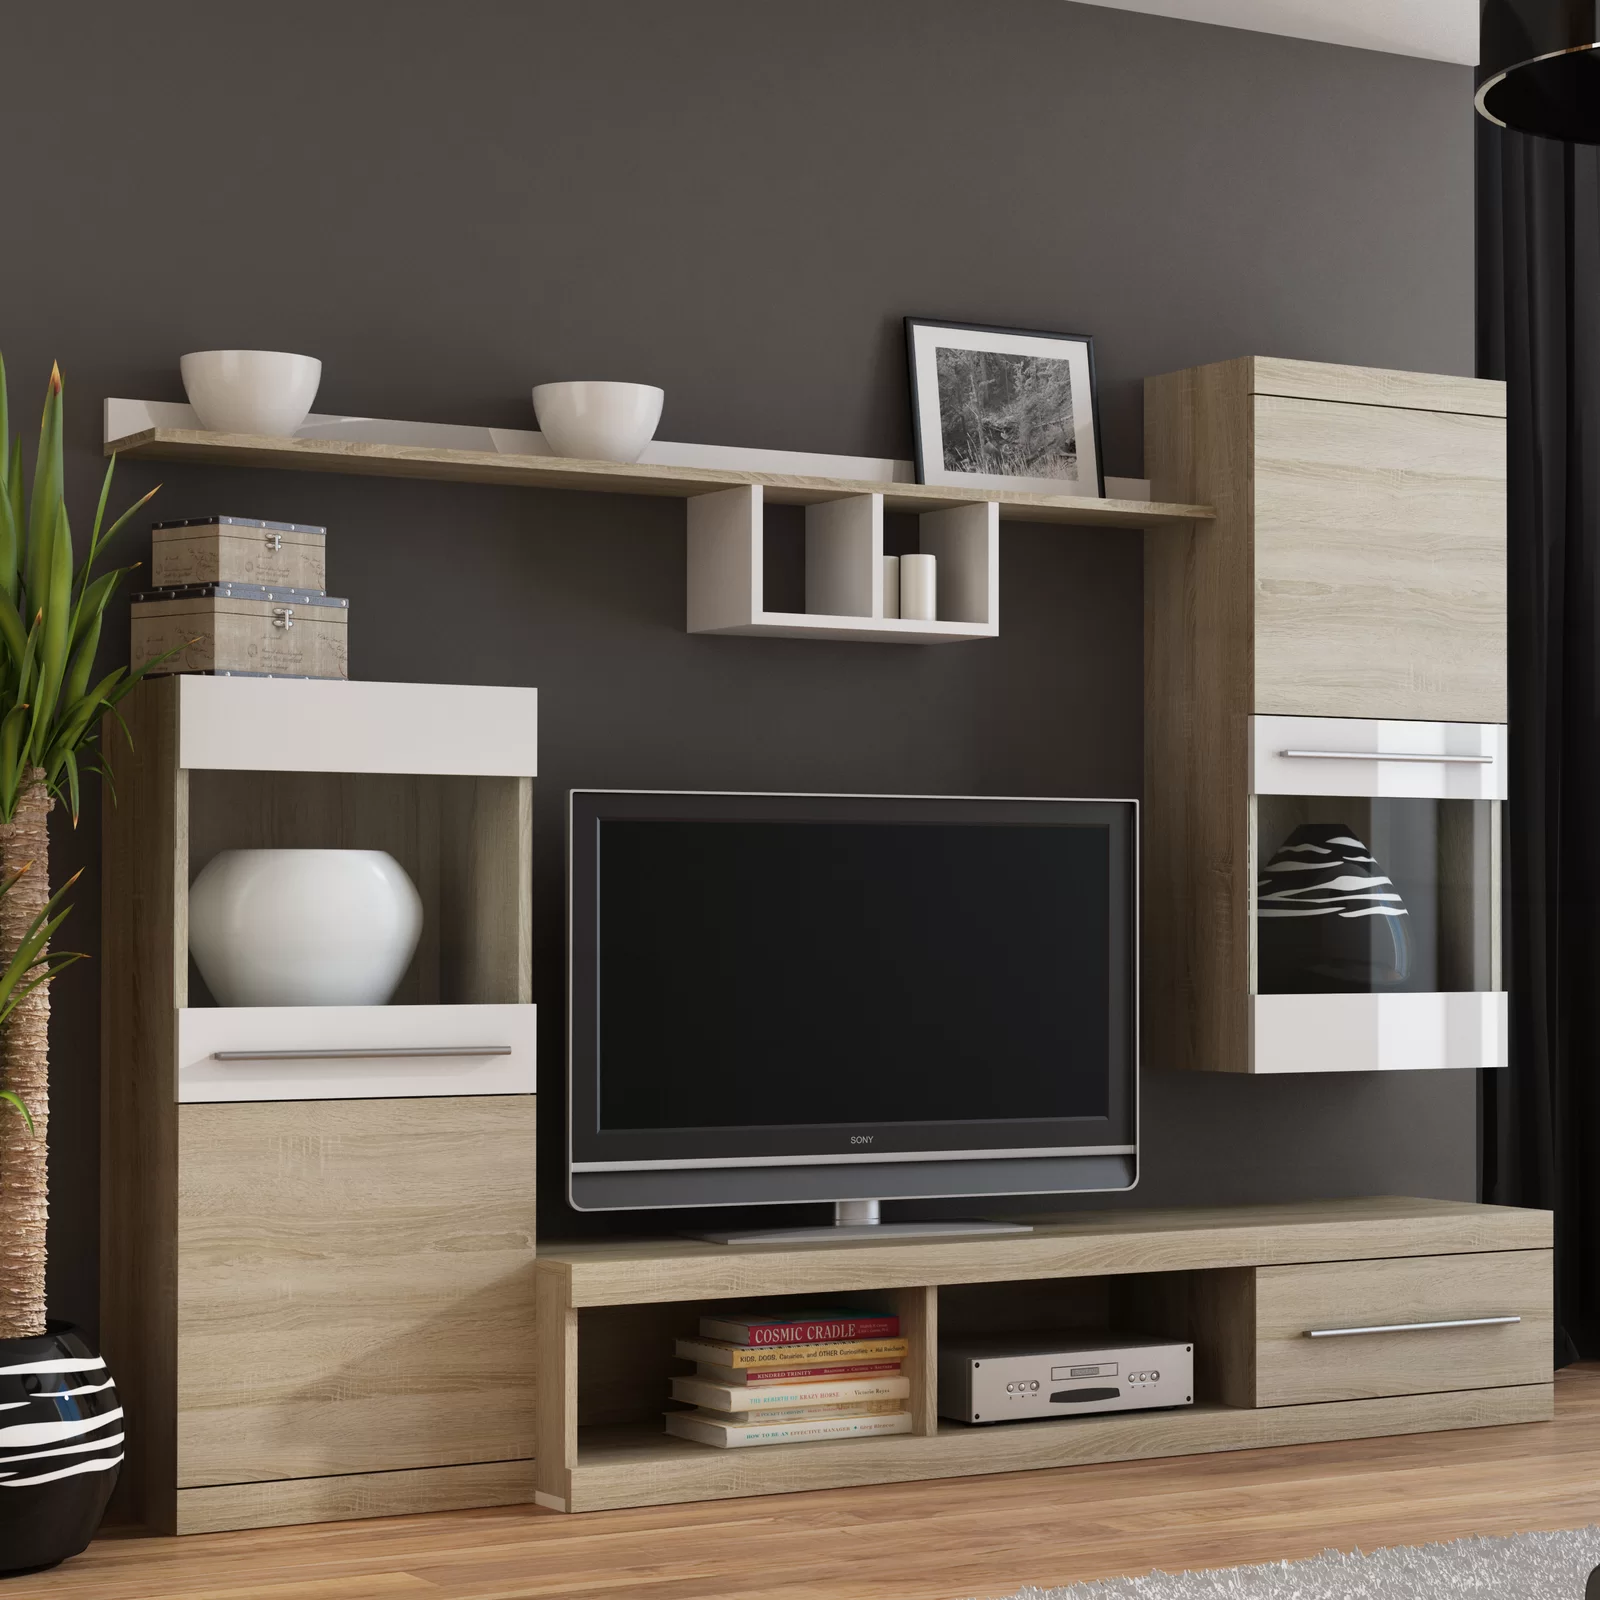 Simple Mdf Tv Stand Design Wood Entertainment Centers Tv Cabinet Living Room Furniture Wooden Featured Image